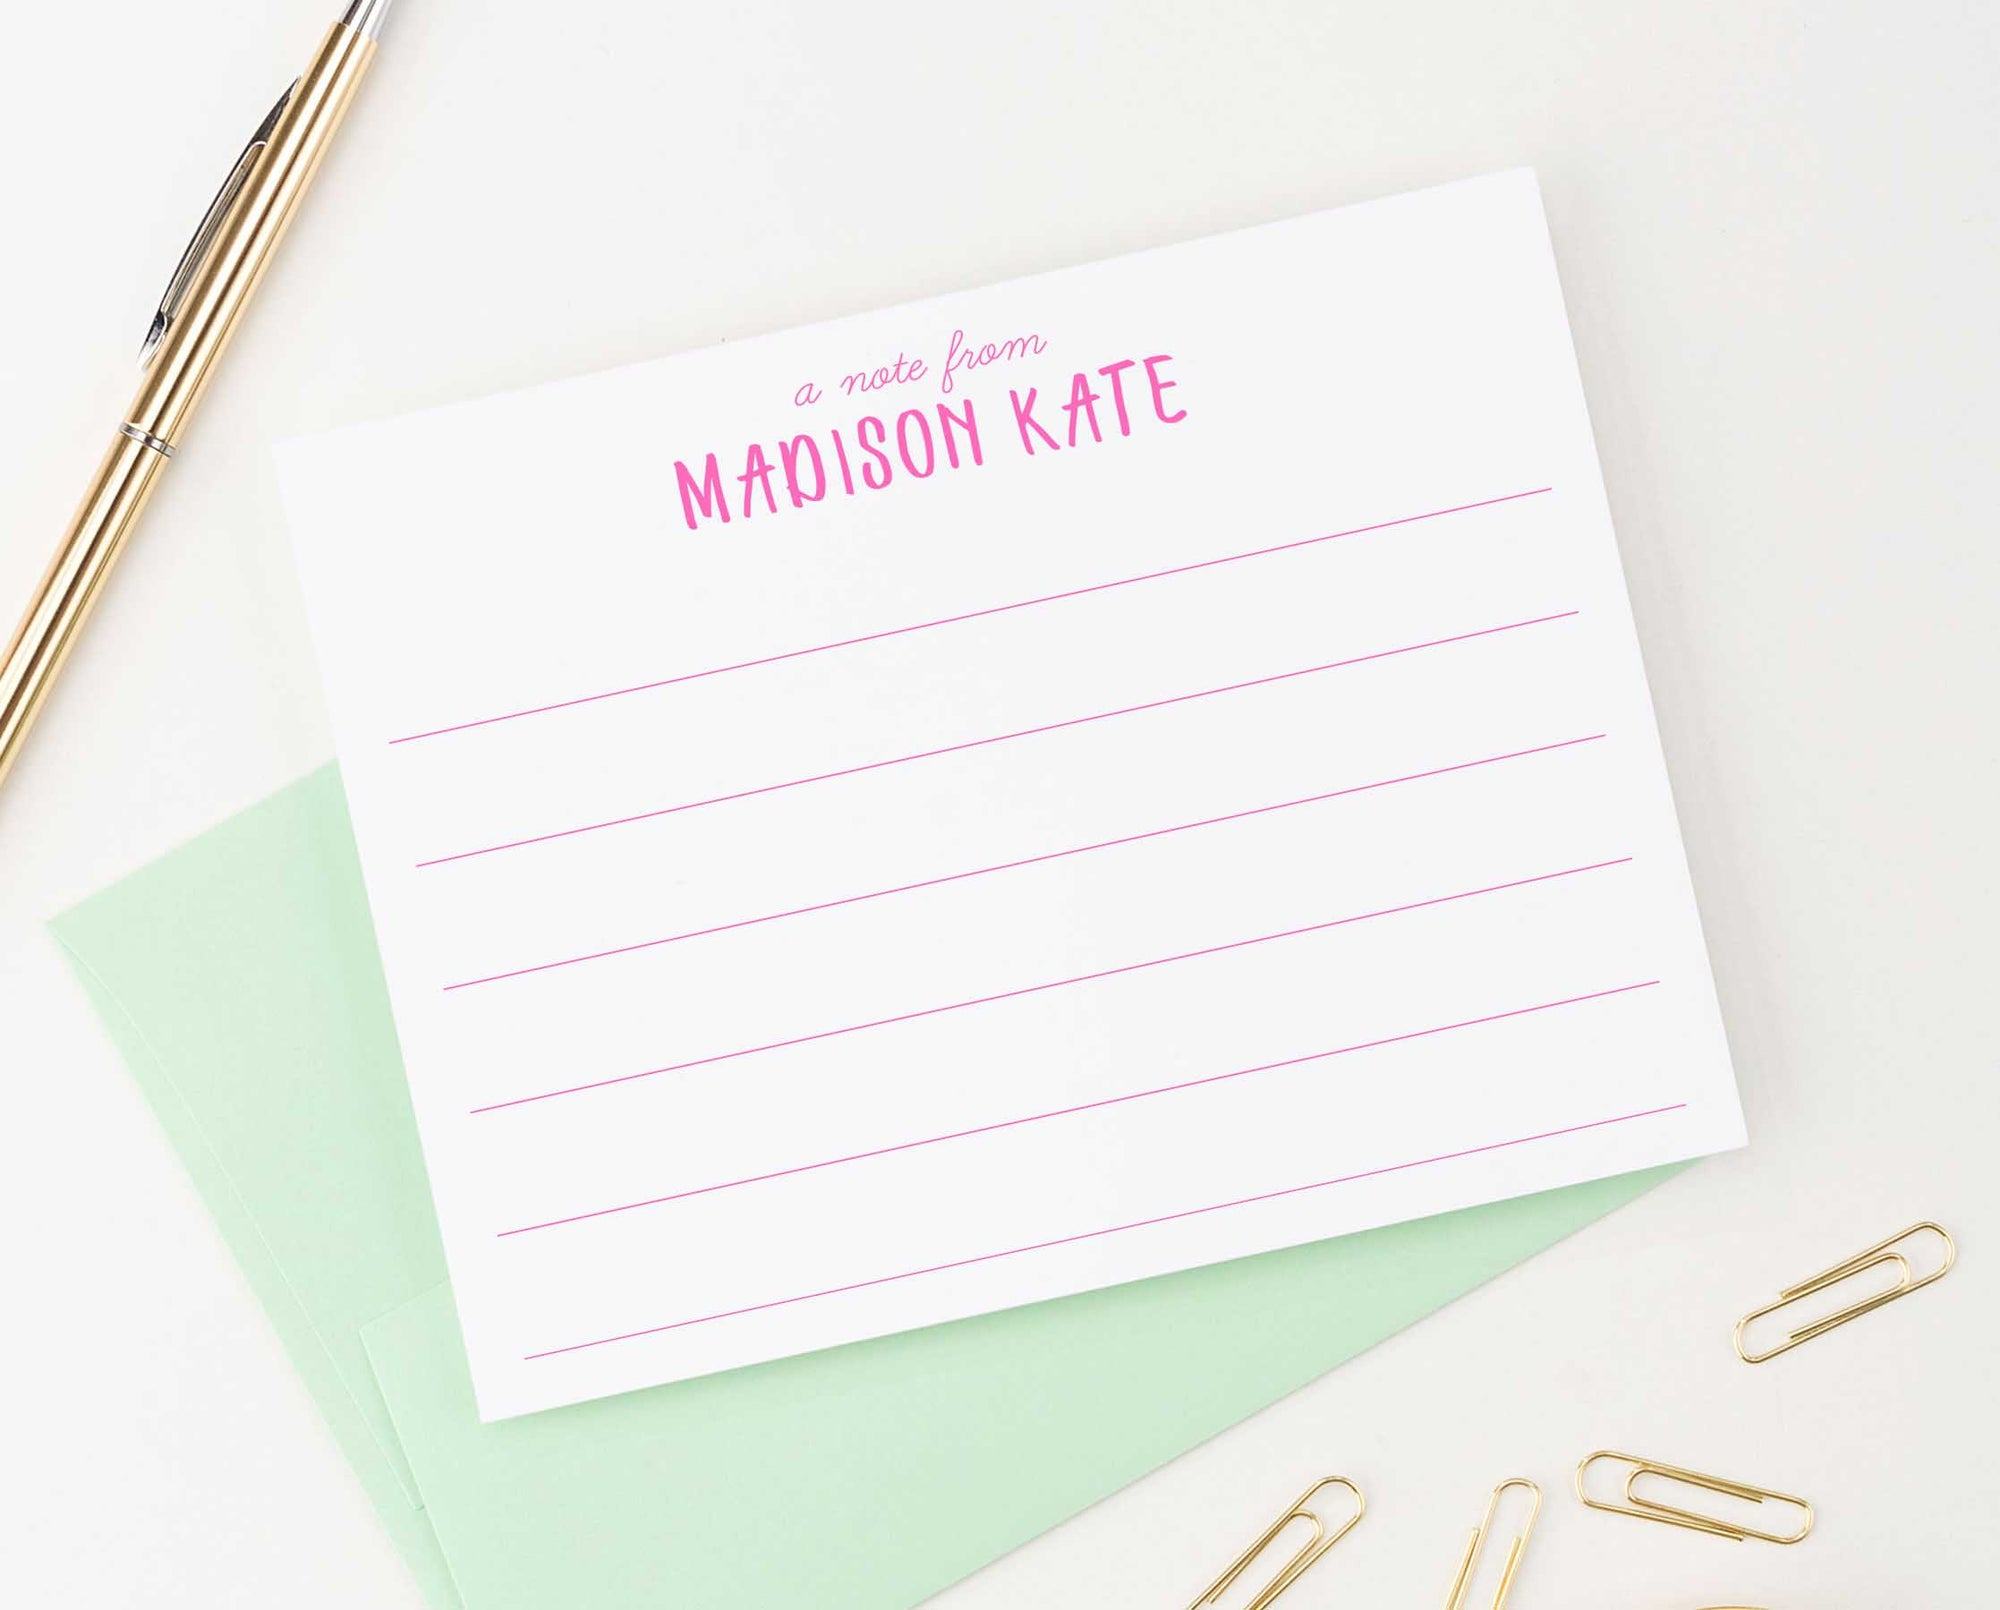 KS096 personalized a note from lined note cards for girls boys kids kid line lines simple stationery